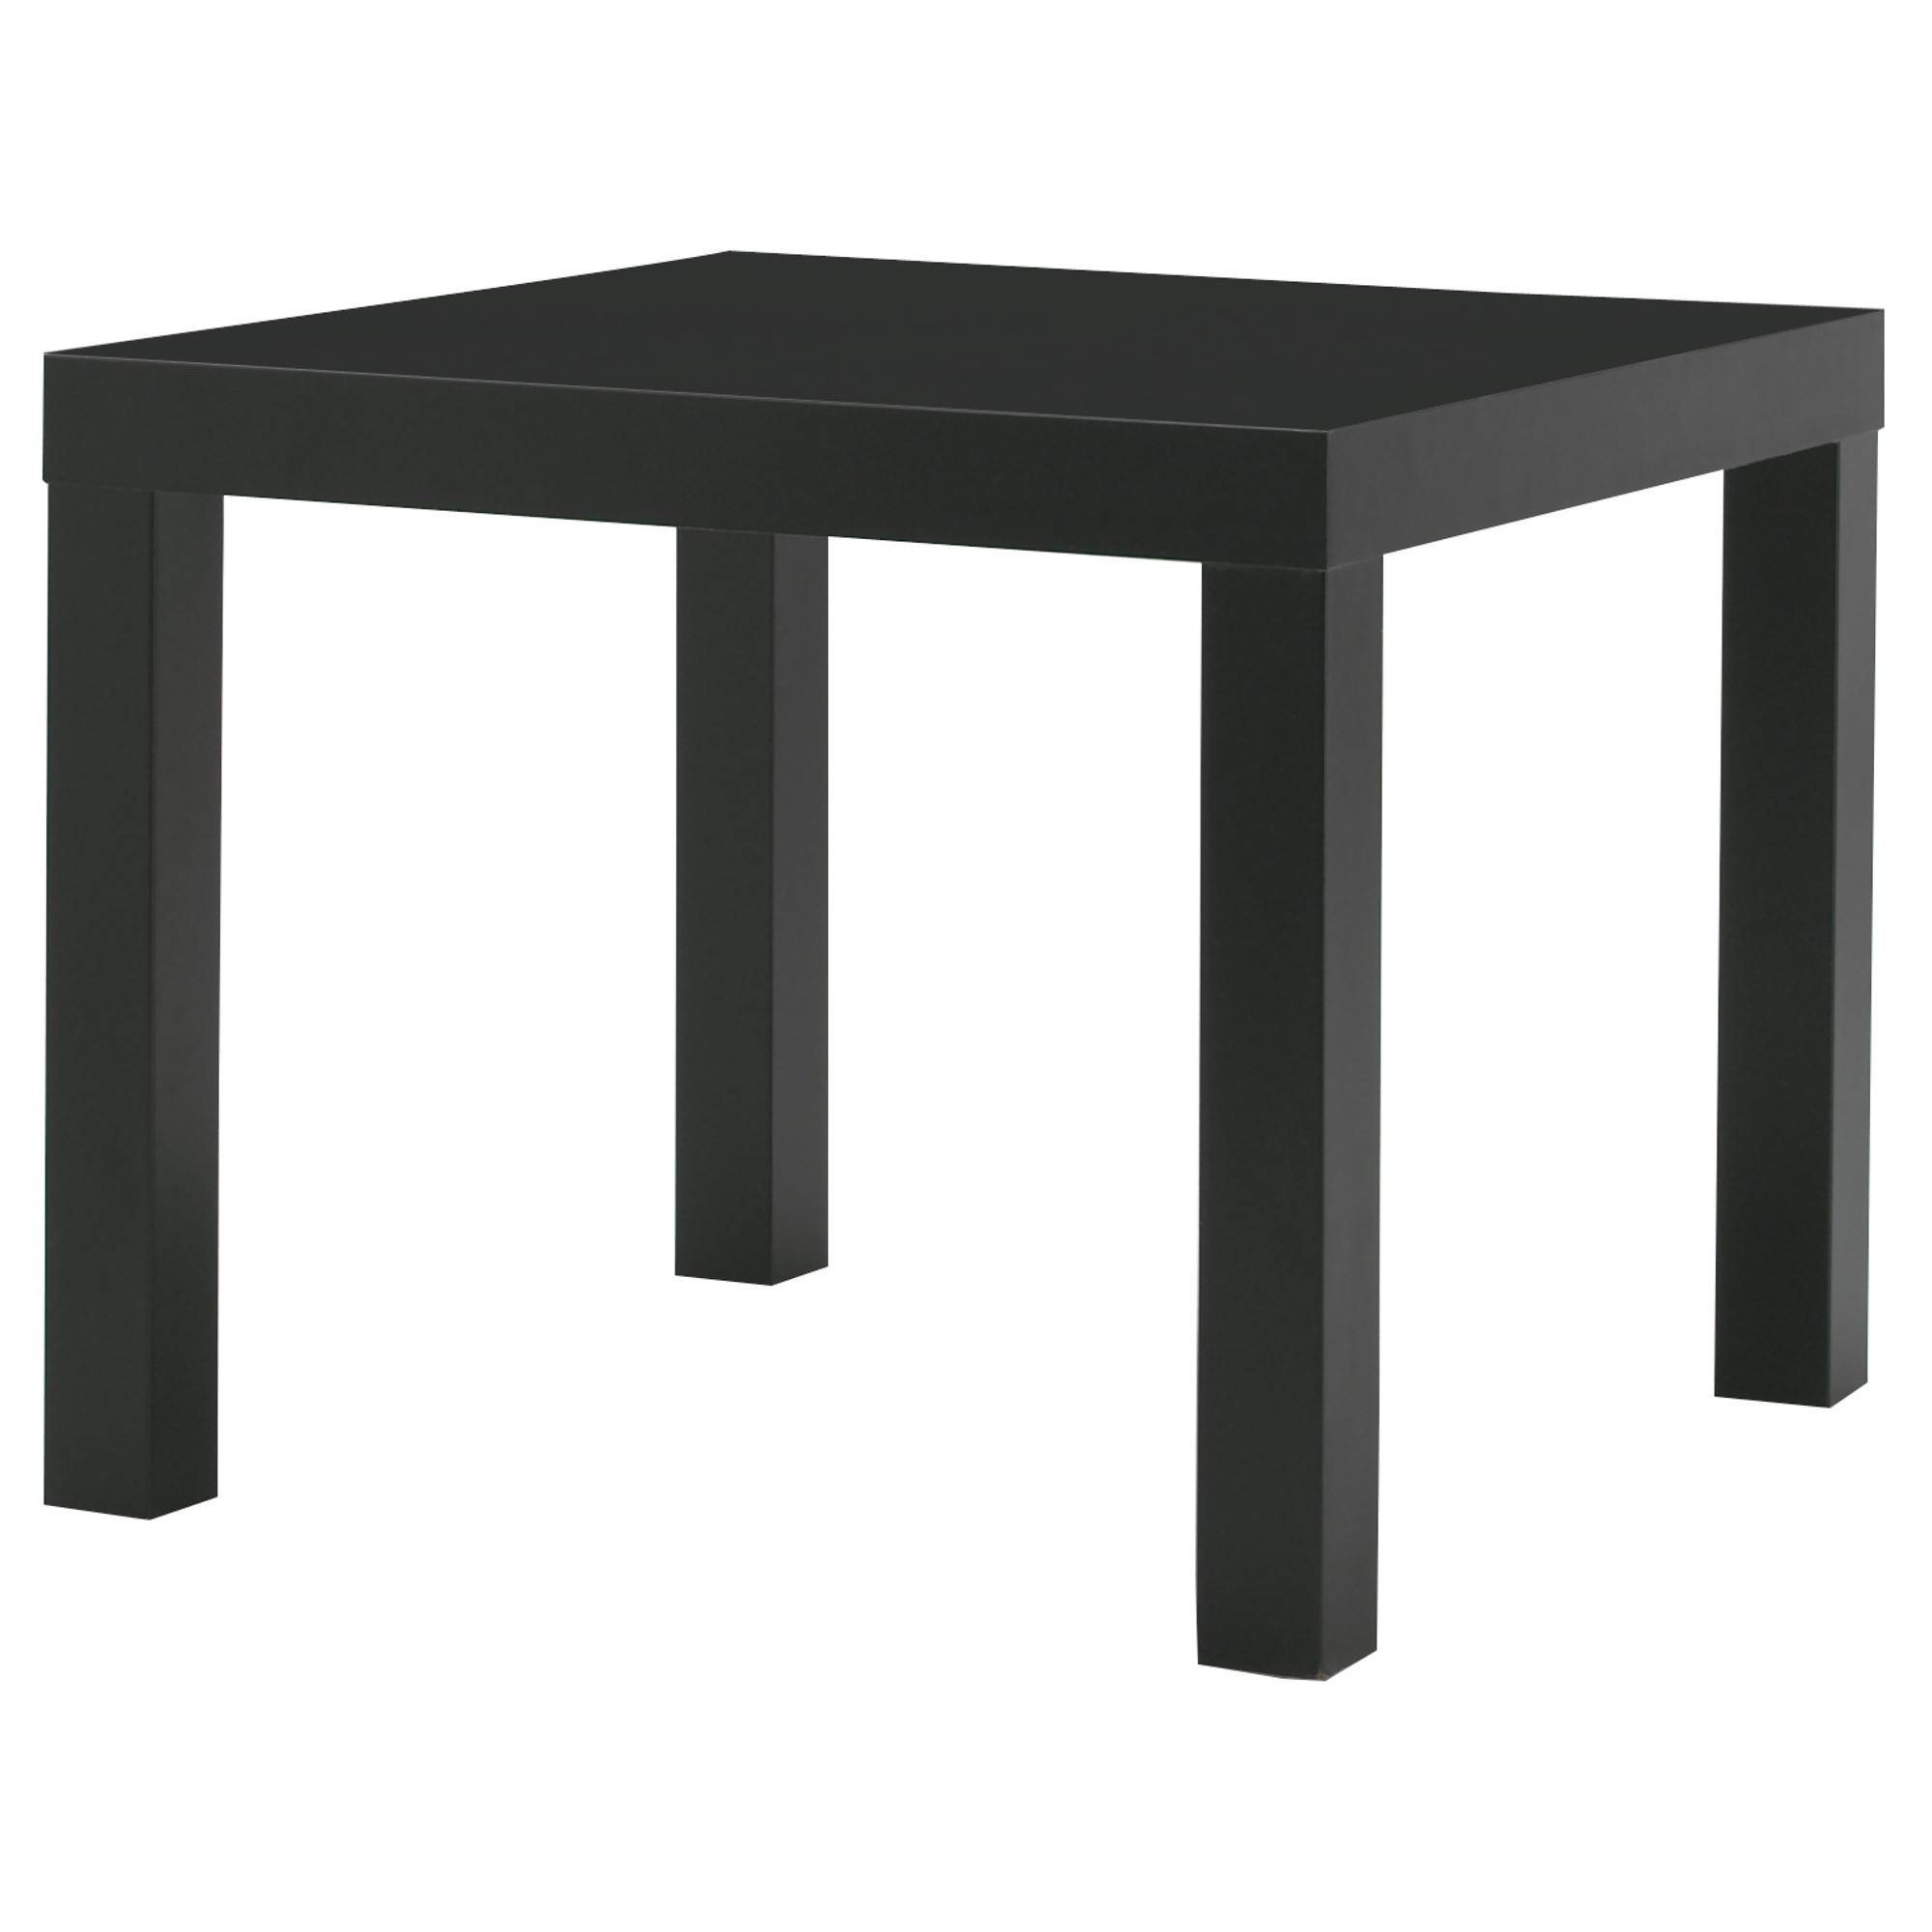 "Lack Side Table - Birch Effect, 21 5/8X21 5/8 "" - Ikea within Square Black Coffee Tables (Image 20 of 30)"